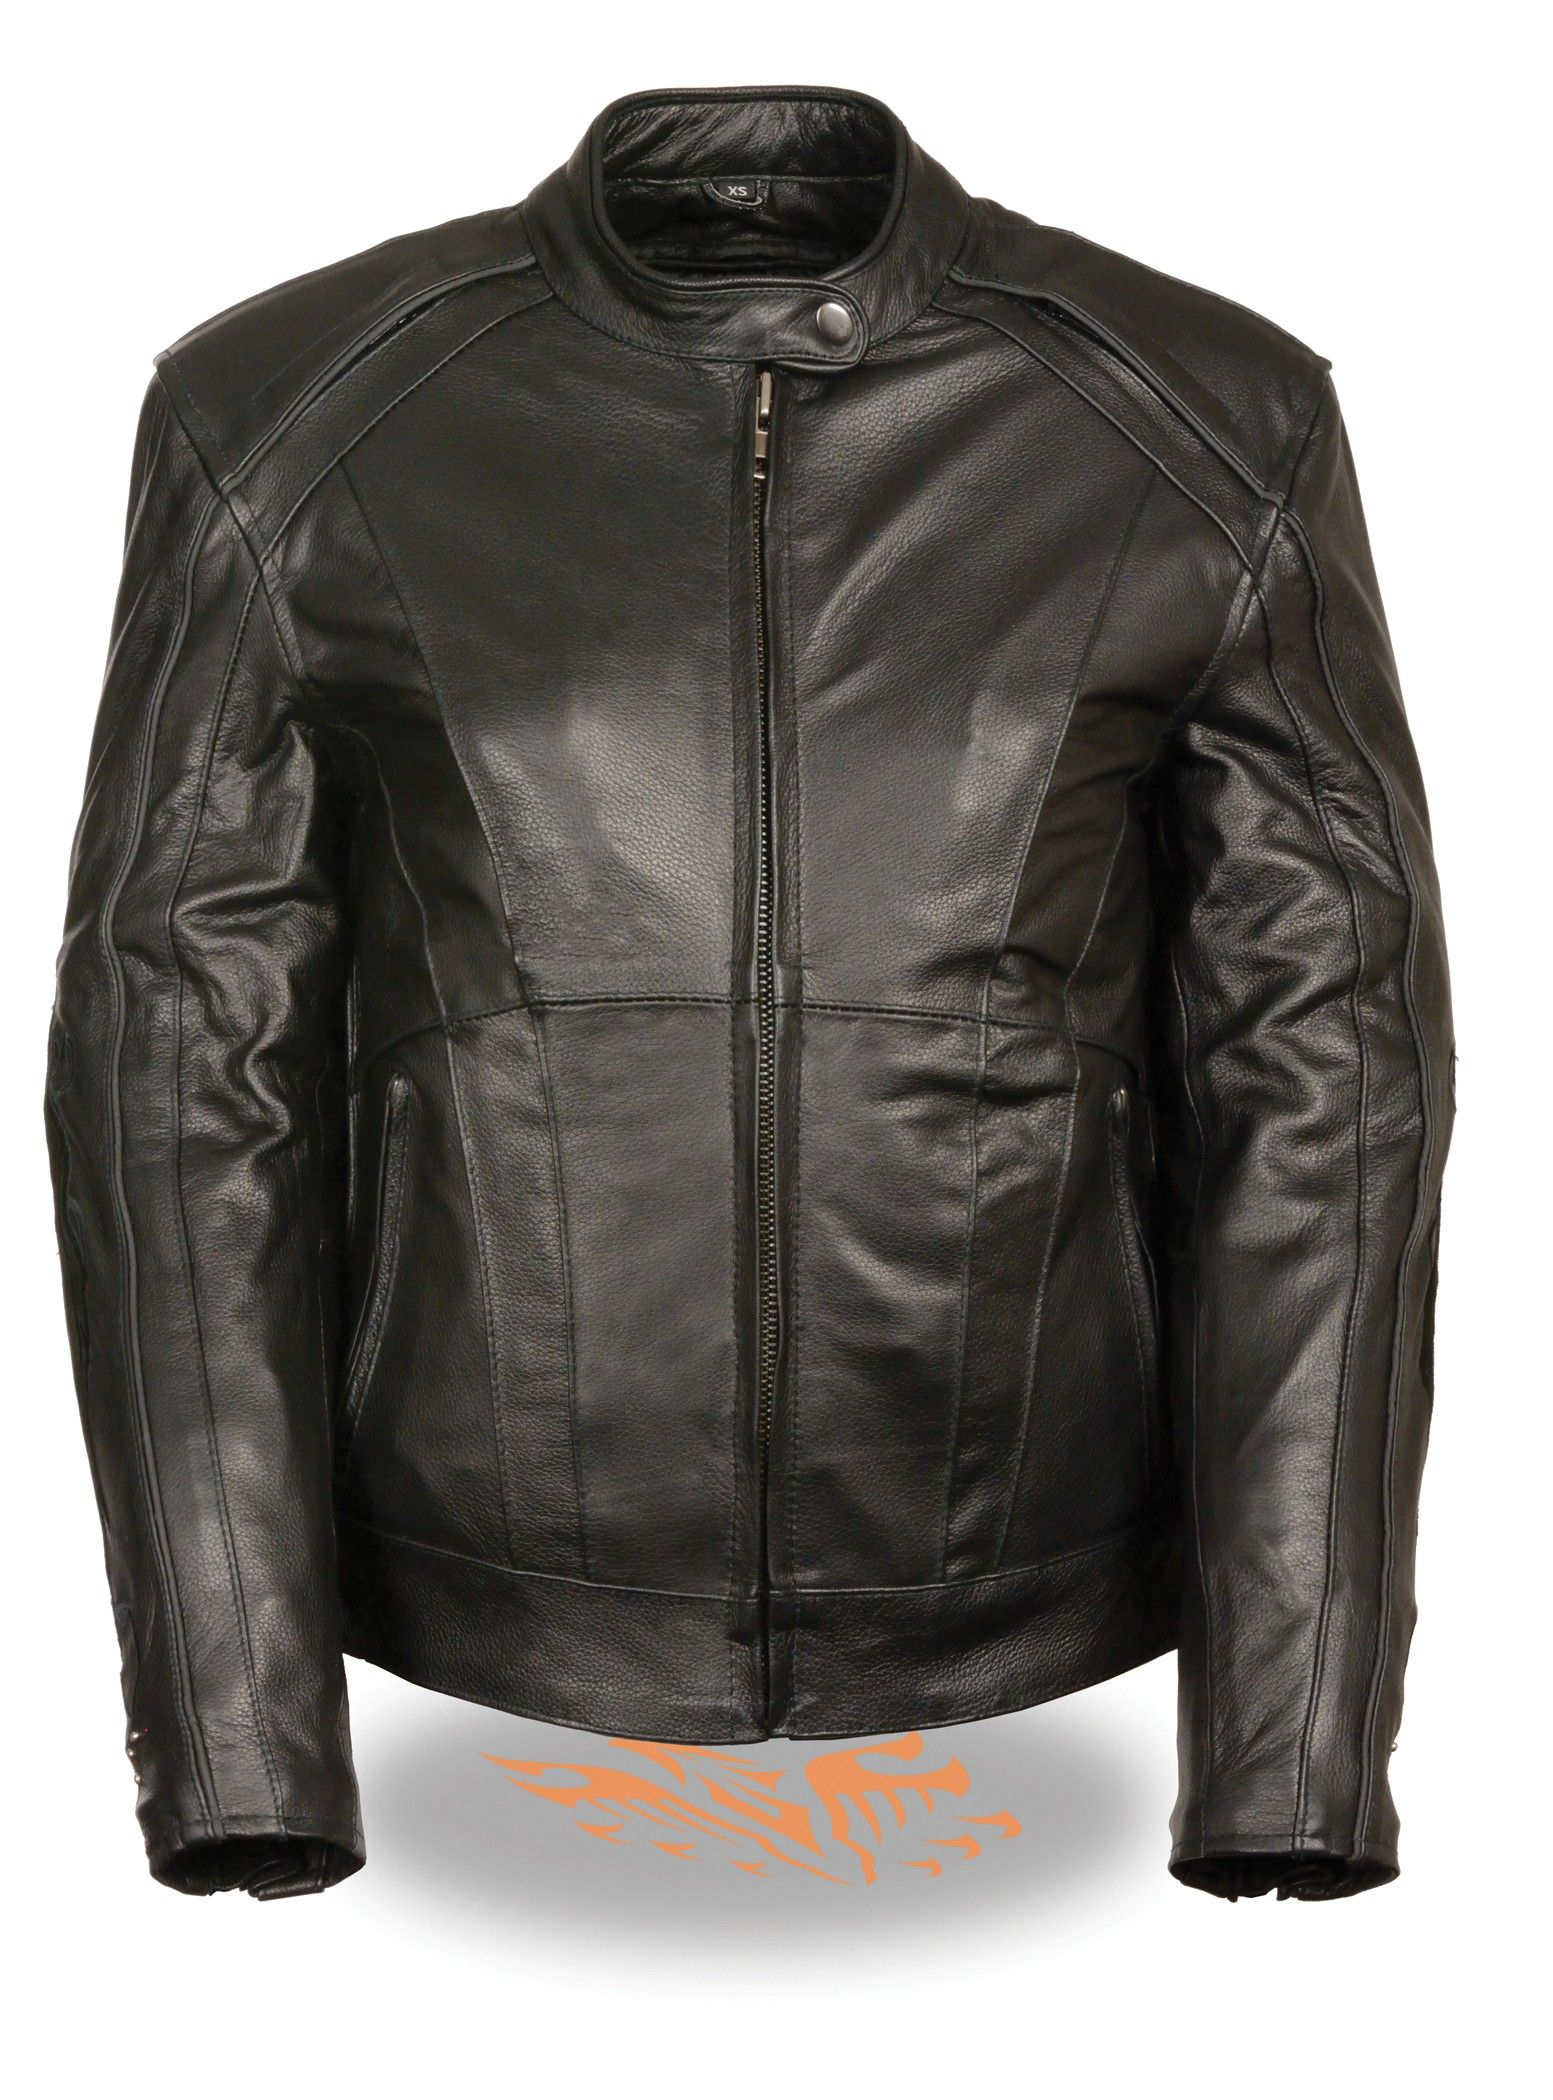 for v chrome bj sale b motorcycle fashion and jacket id clothing master leather jackets ps black s suede stud